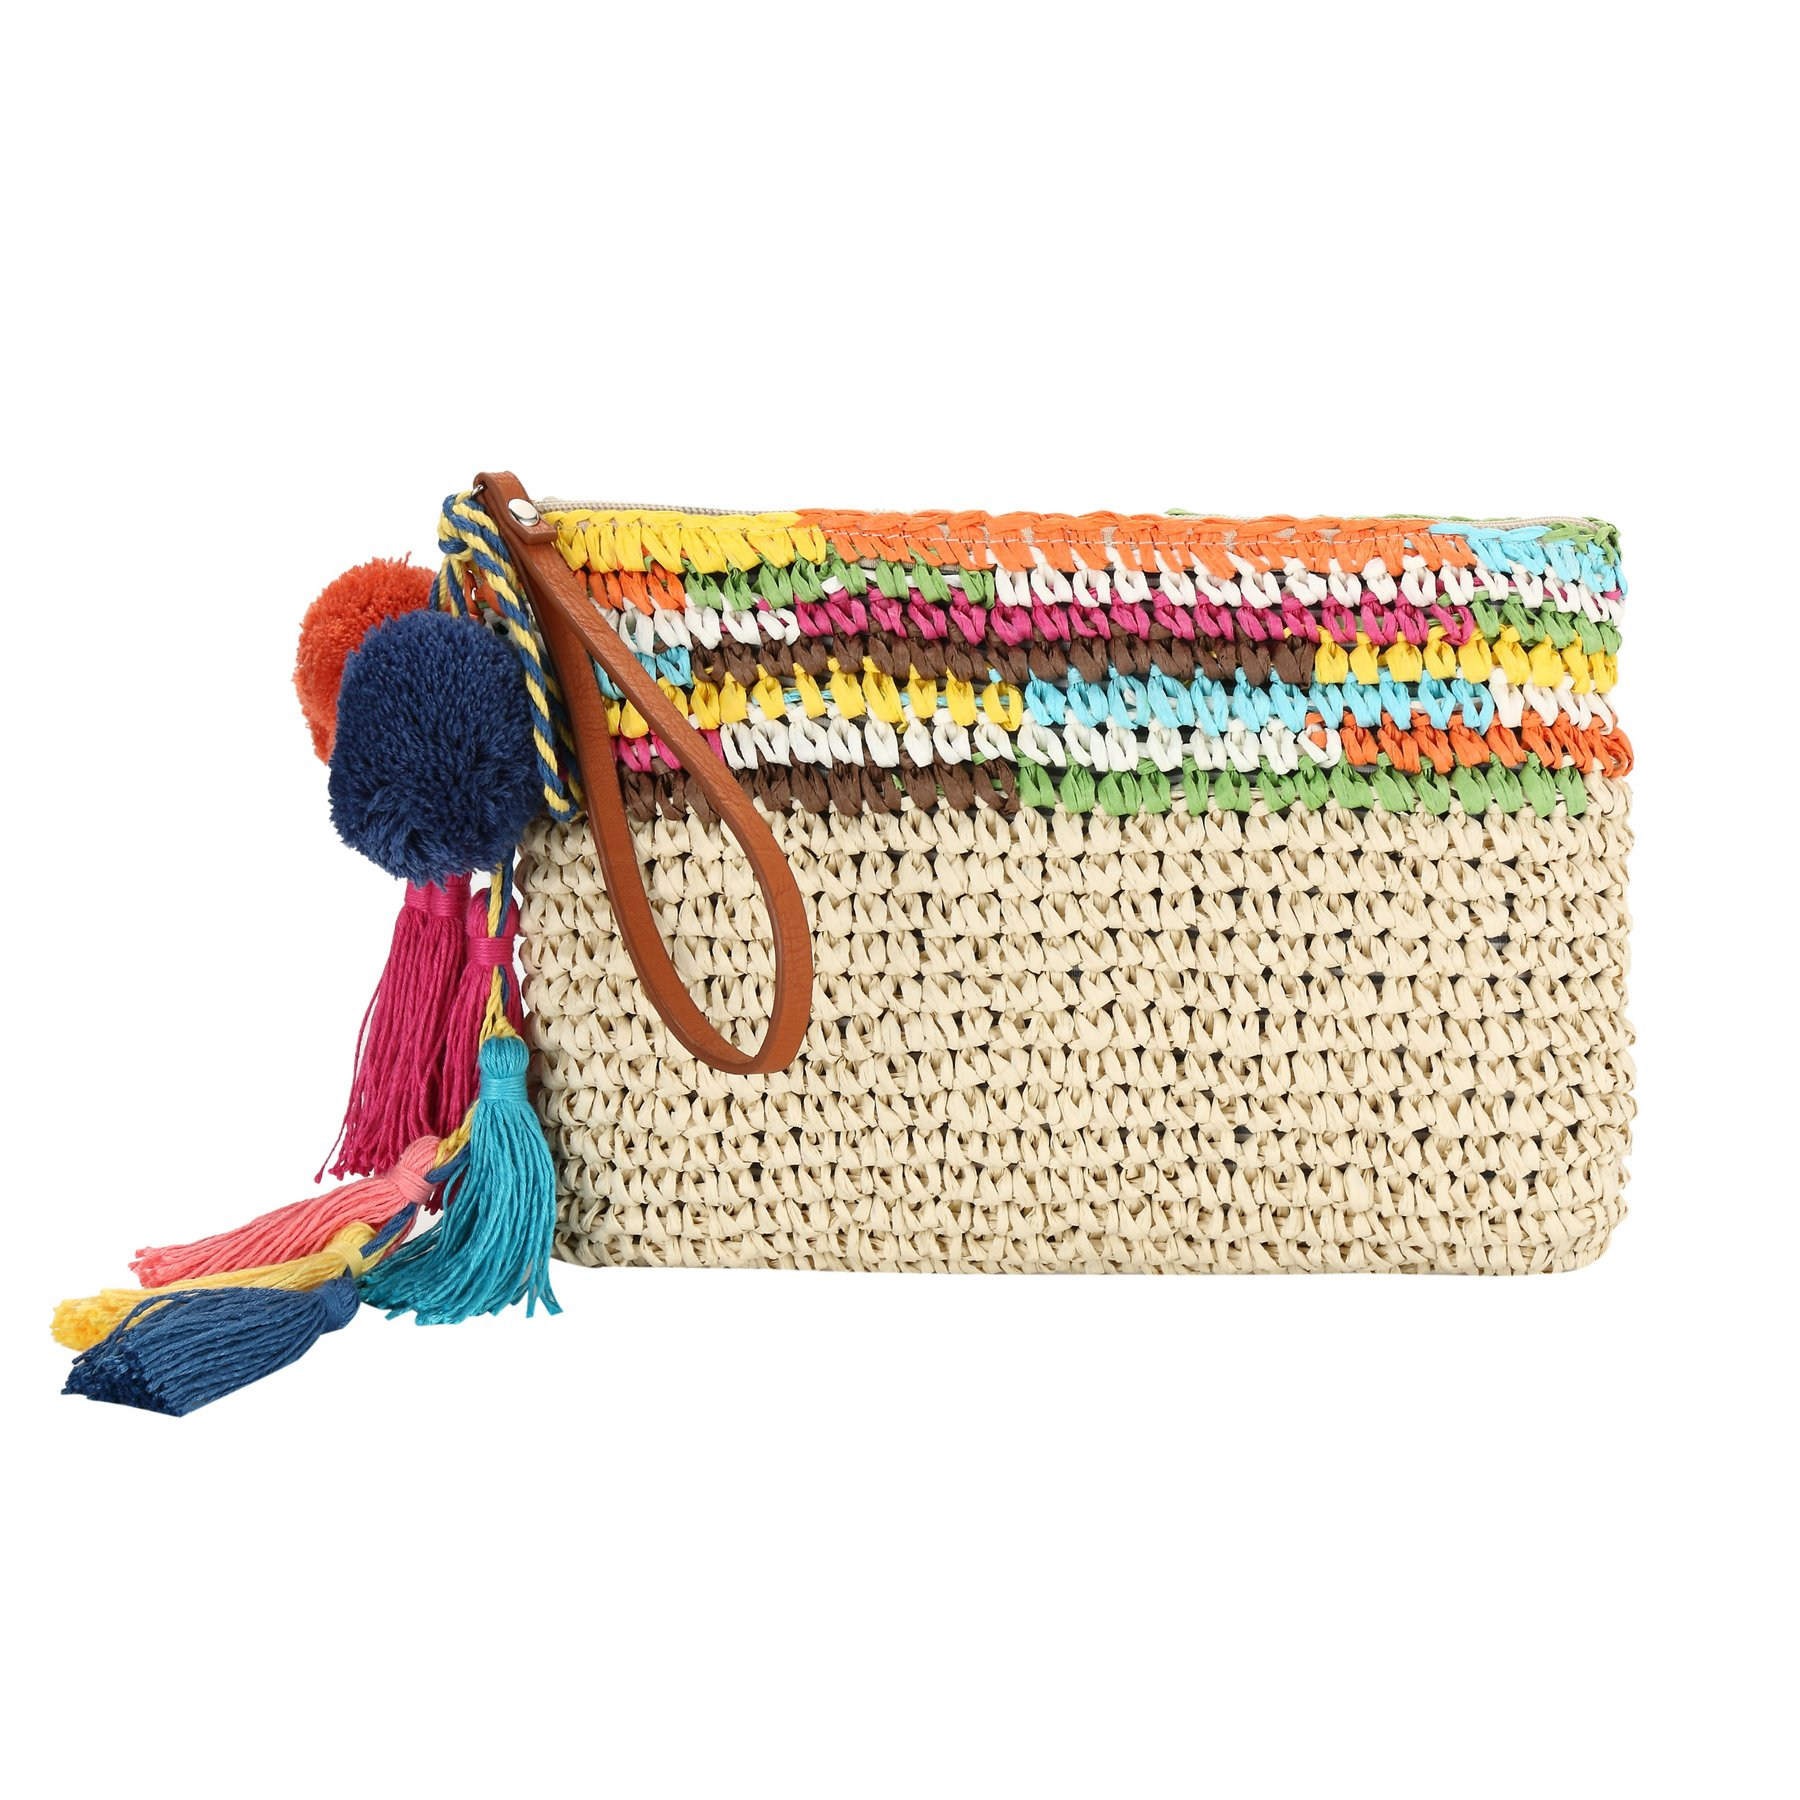 Summer Clutch Purse By Daisy Rose  Unique Straw Summer Purse & Handbag with Vegan Leather Handles and Pom Poms (White/Blue Stripes)